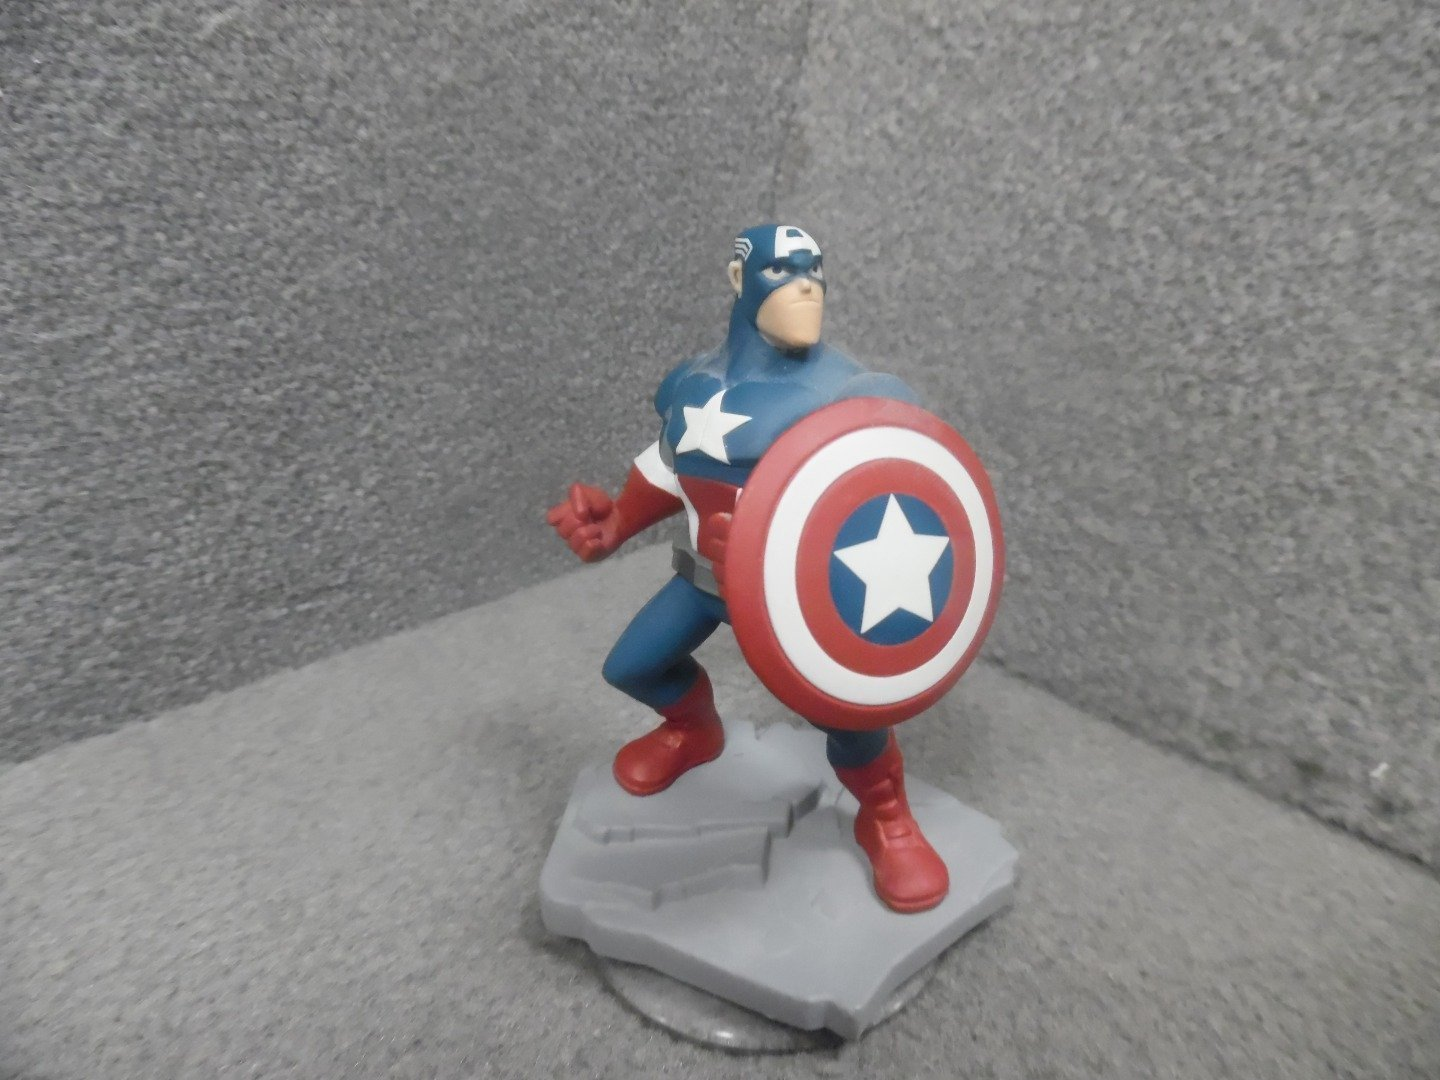 Disney Infinity 2.0 Marvel Captain America Figure, Officially licensed merchandise By Official by